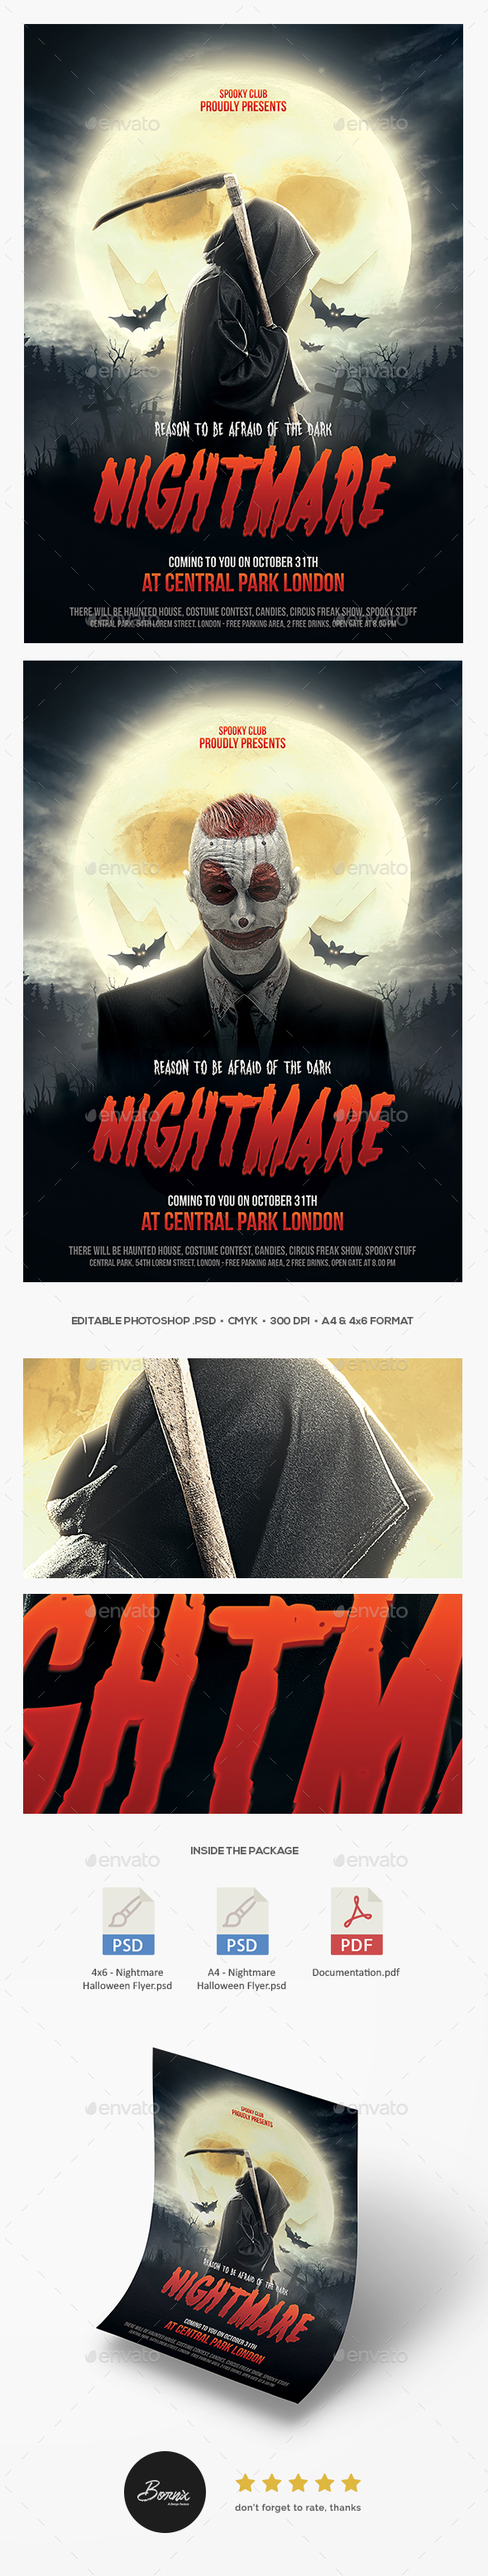 Nightmare Halloween Flyer